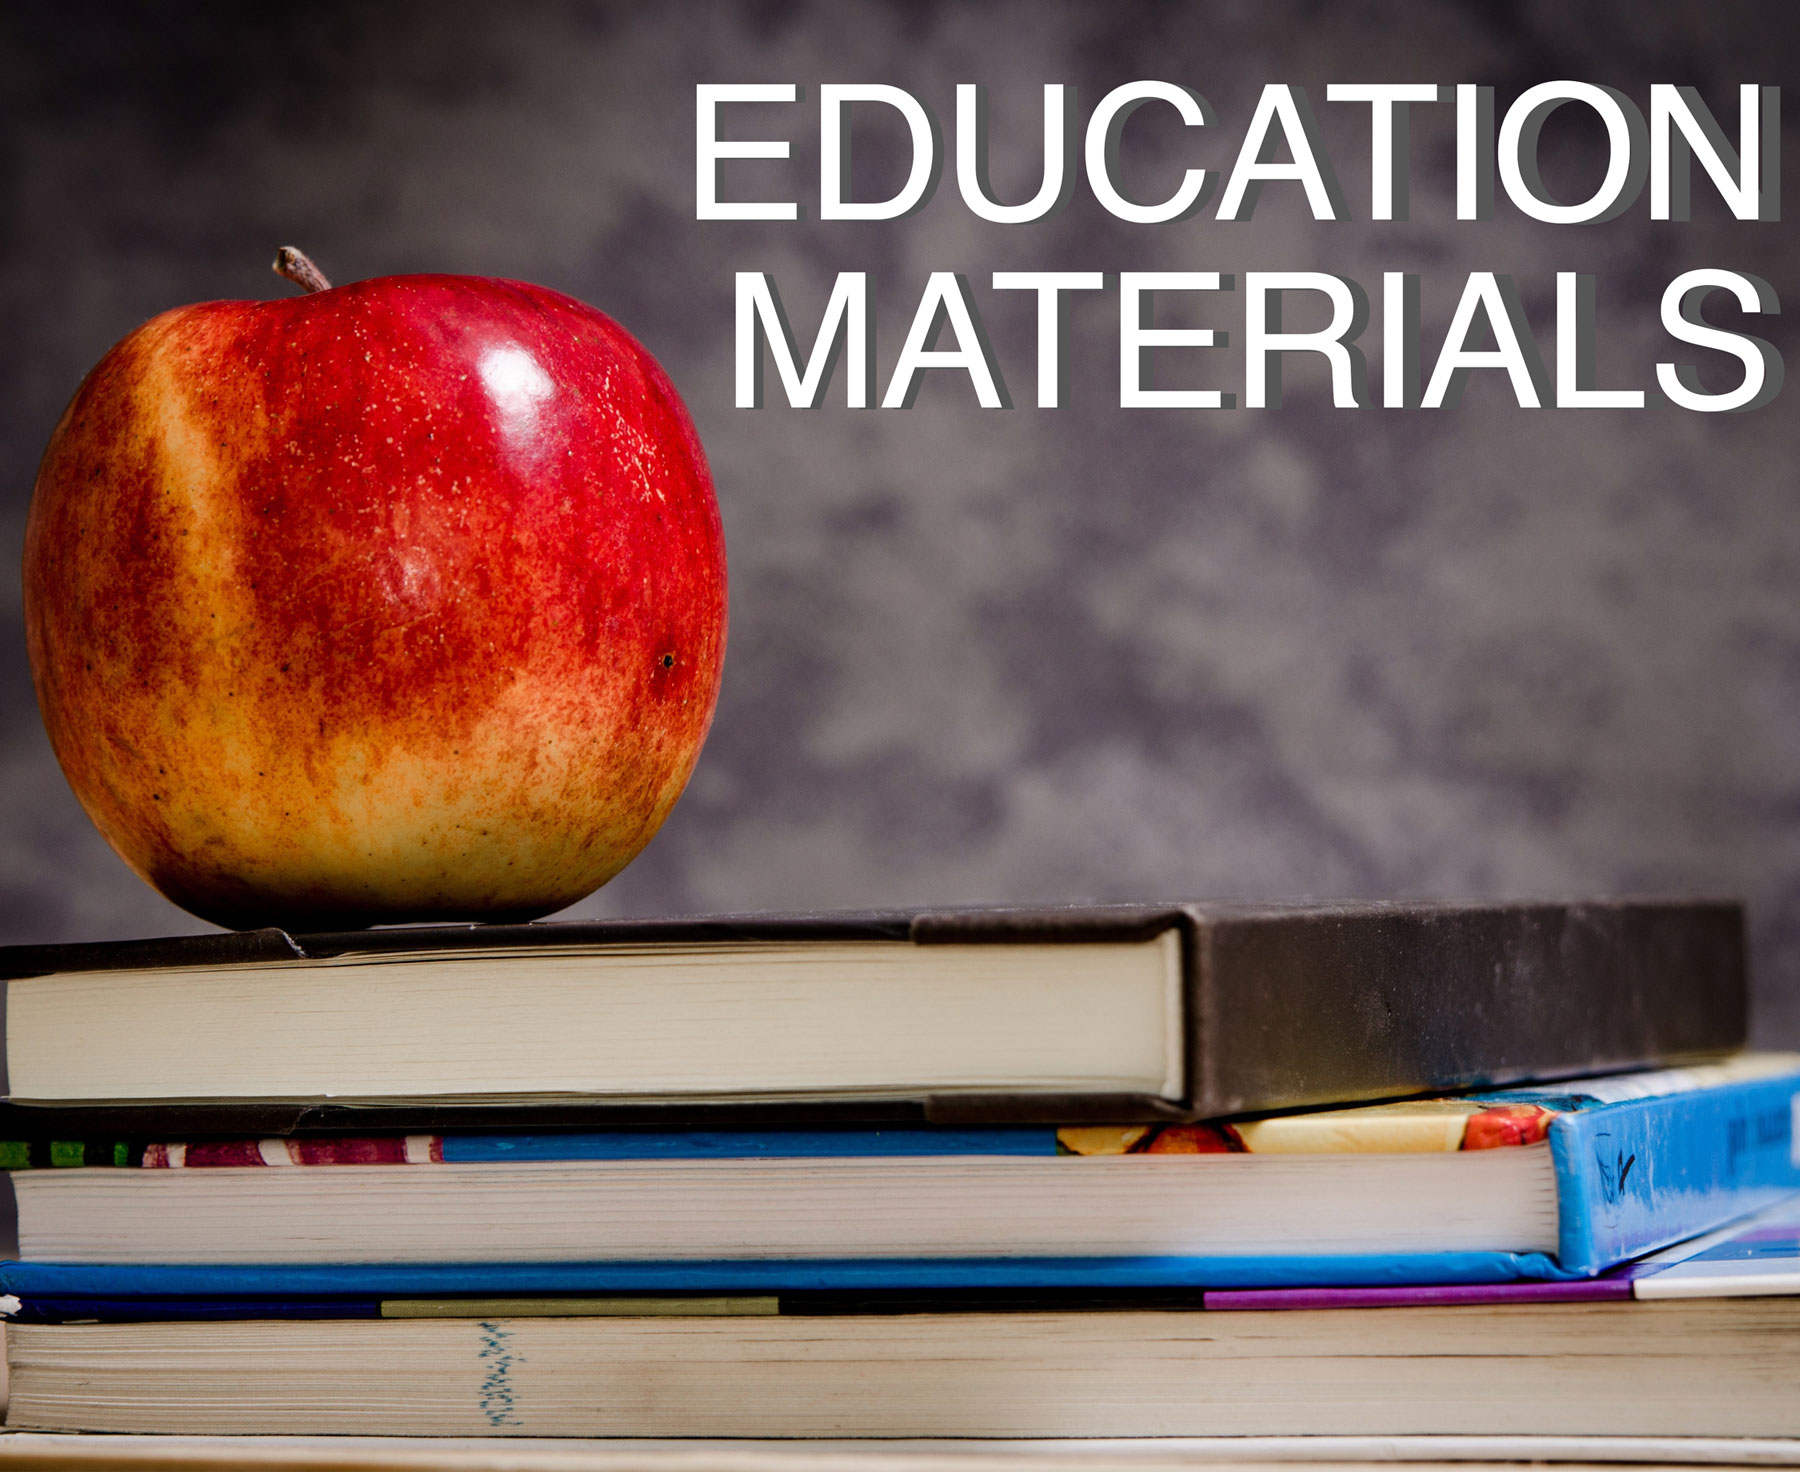 education materials apple and books